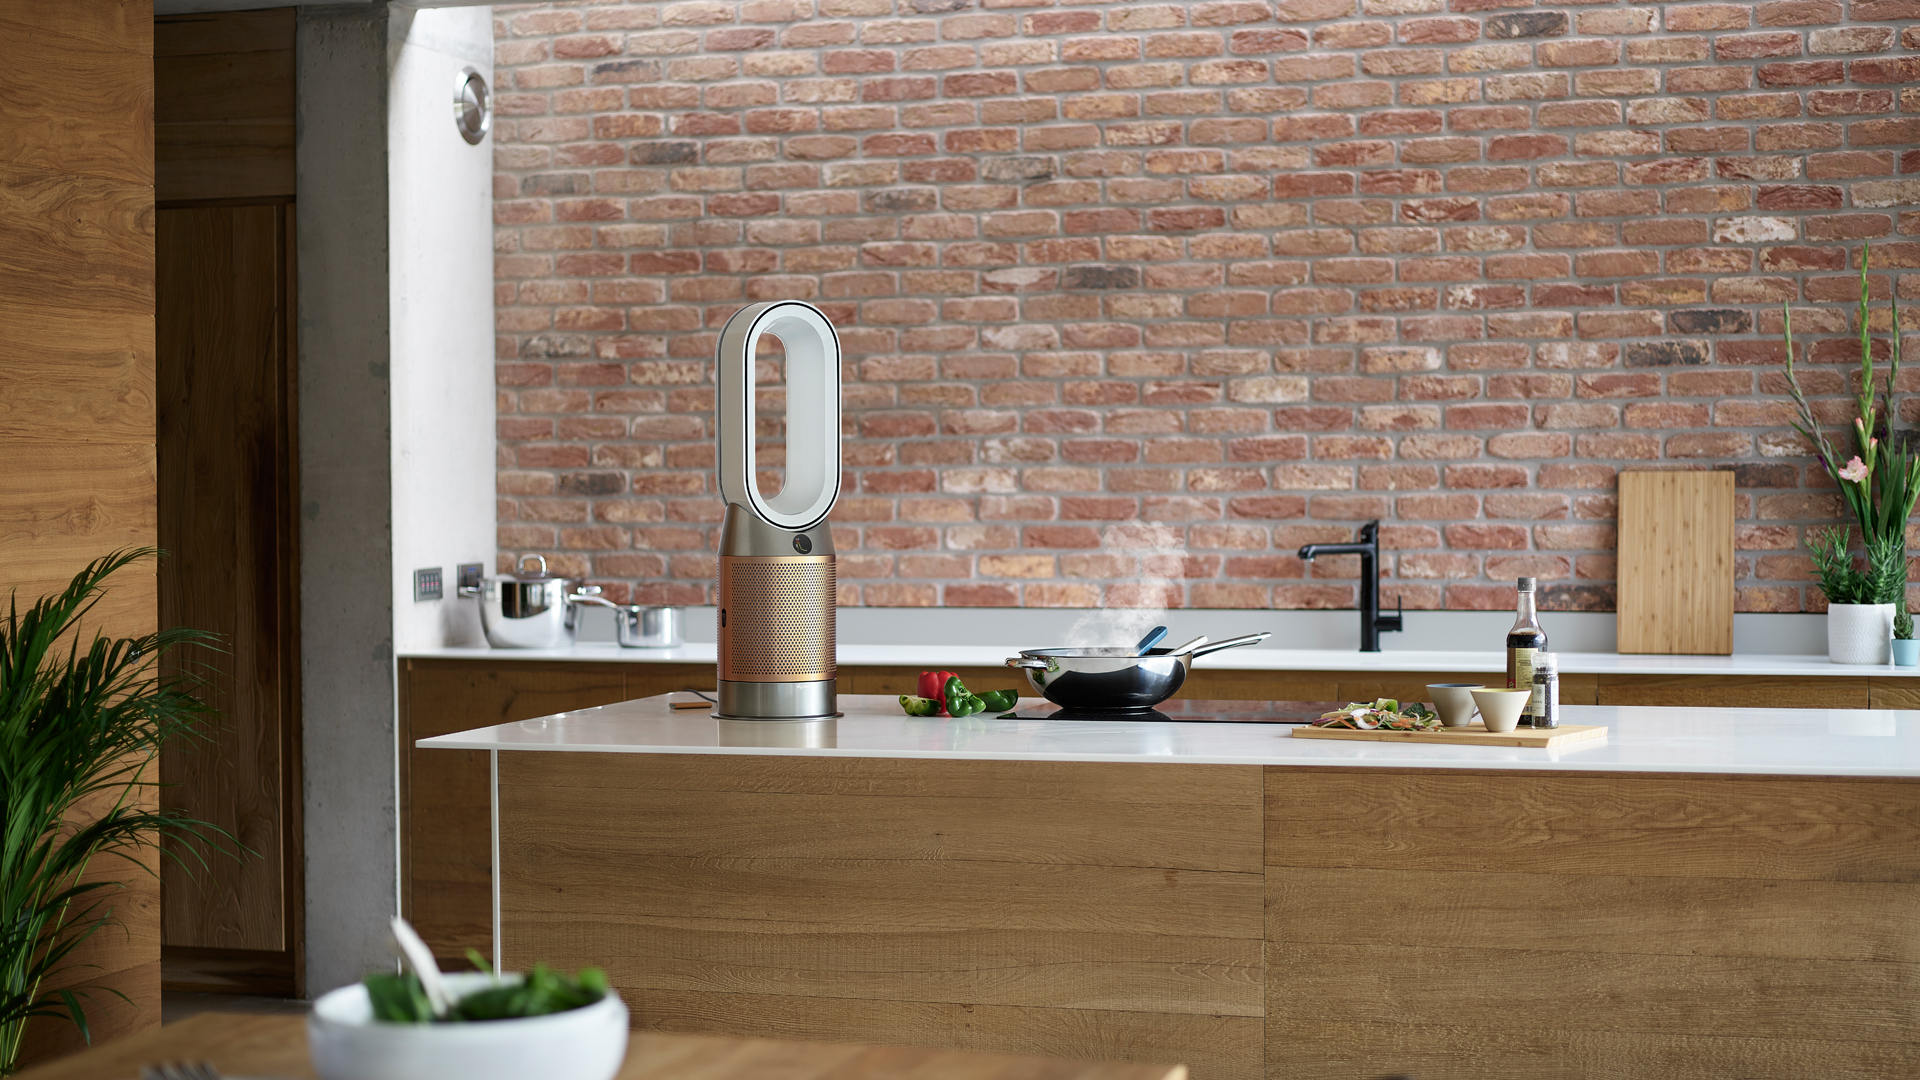 Dyson designs product to remove formaldehyde from the home